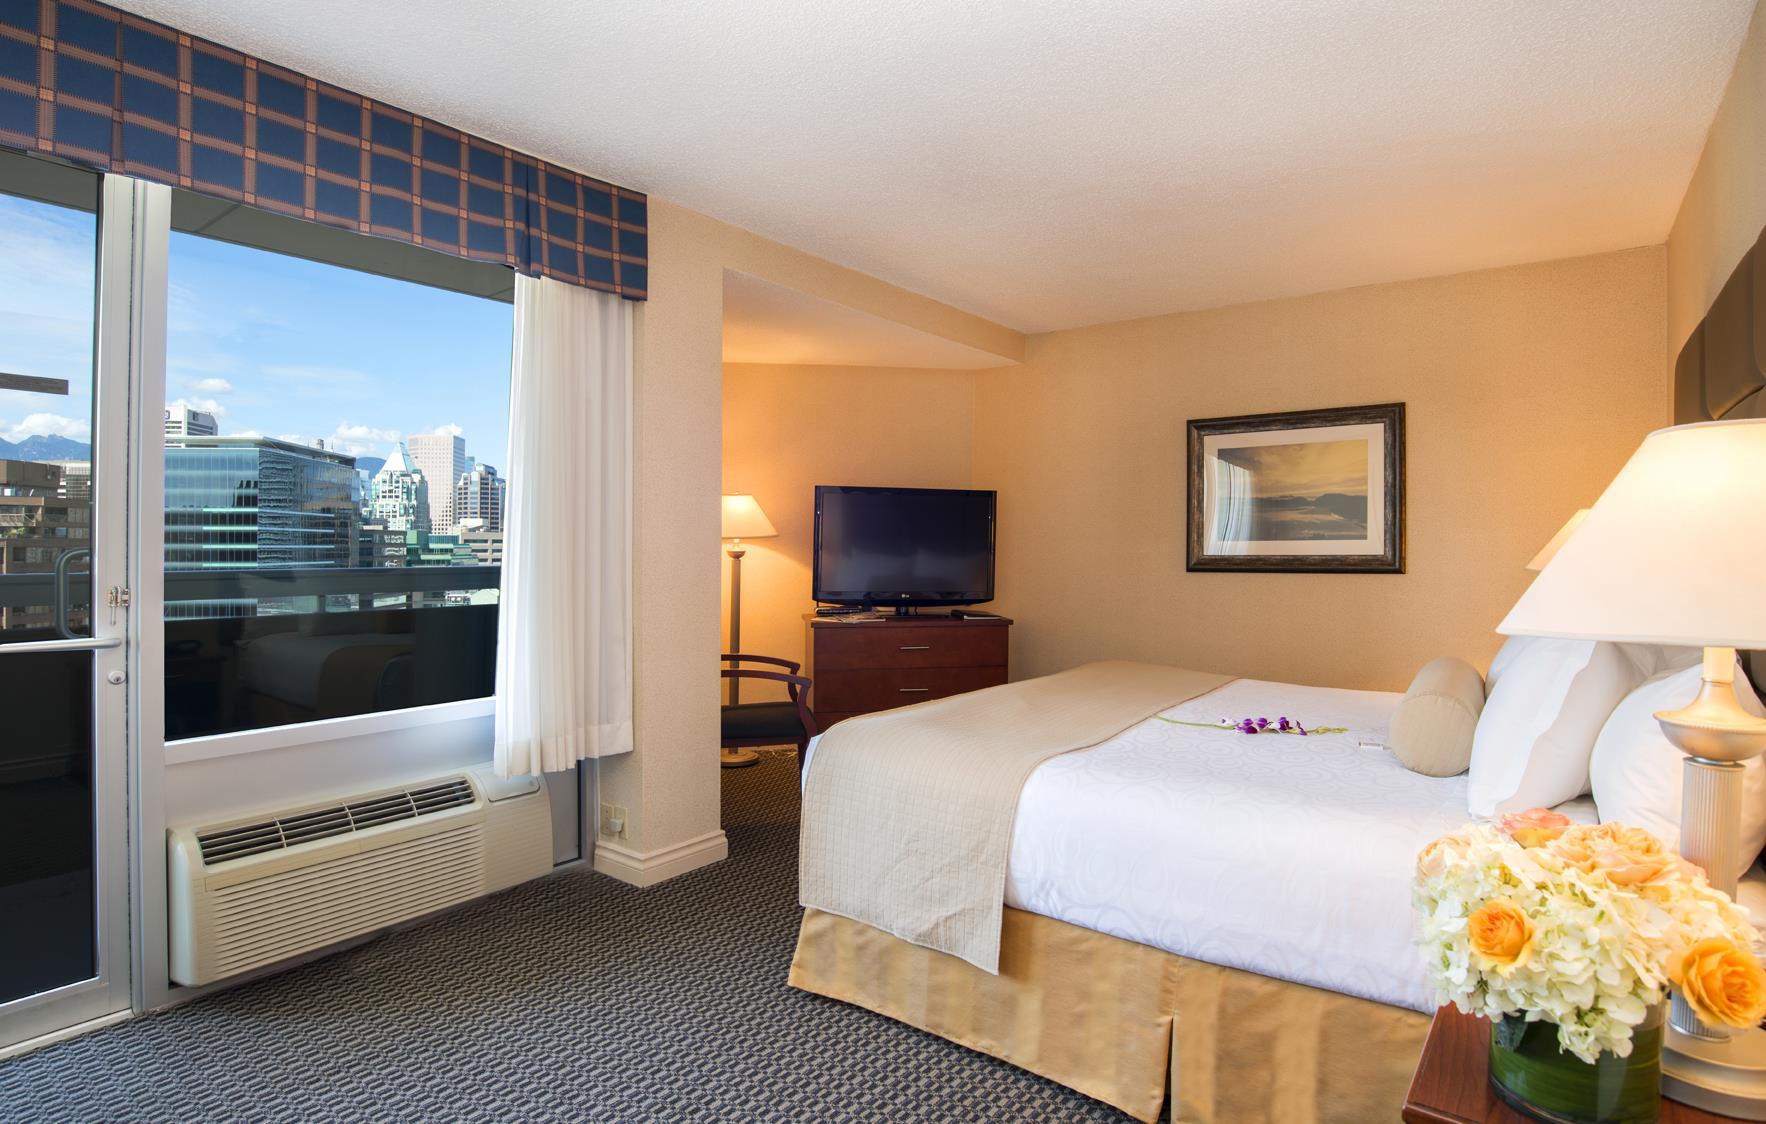 Best Western Plus Chateau Granville Hotel & Suites & Conference Ctr. in Vancouver: Queen Superior View Room